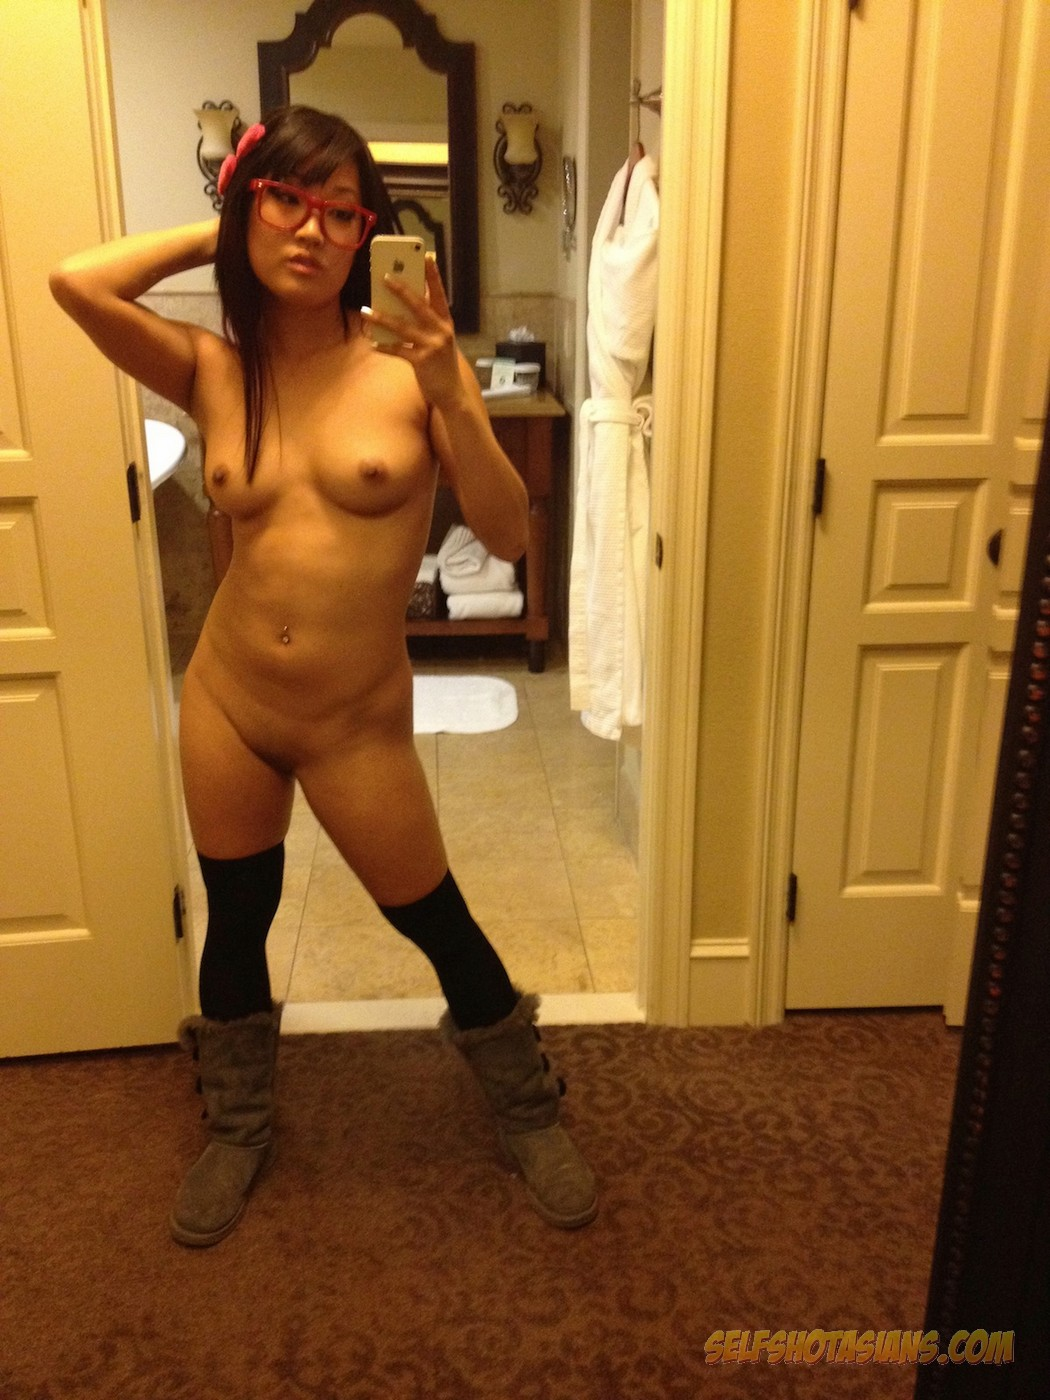 Super cute Korean girl does some nude selfies